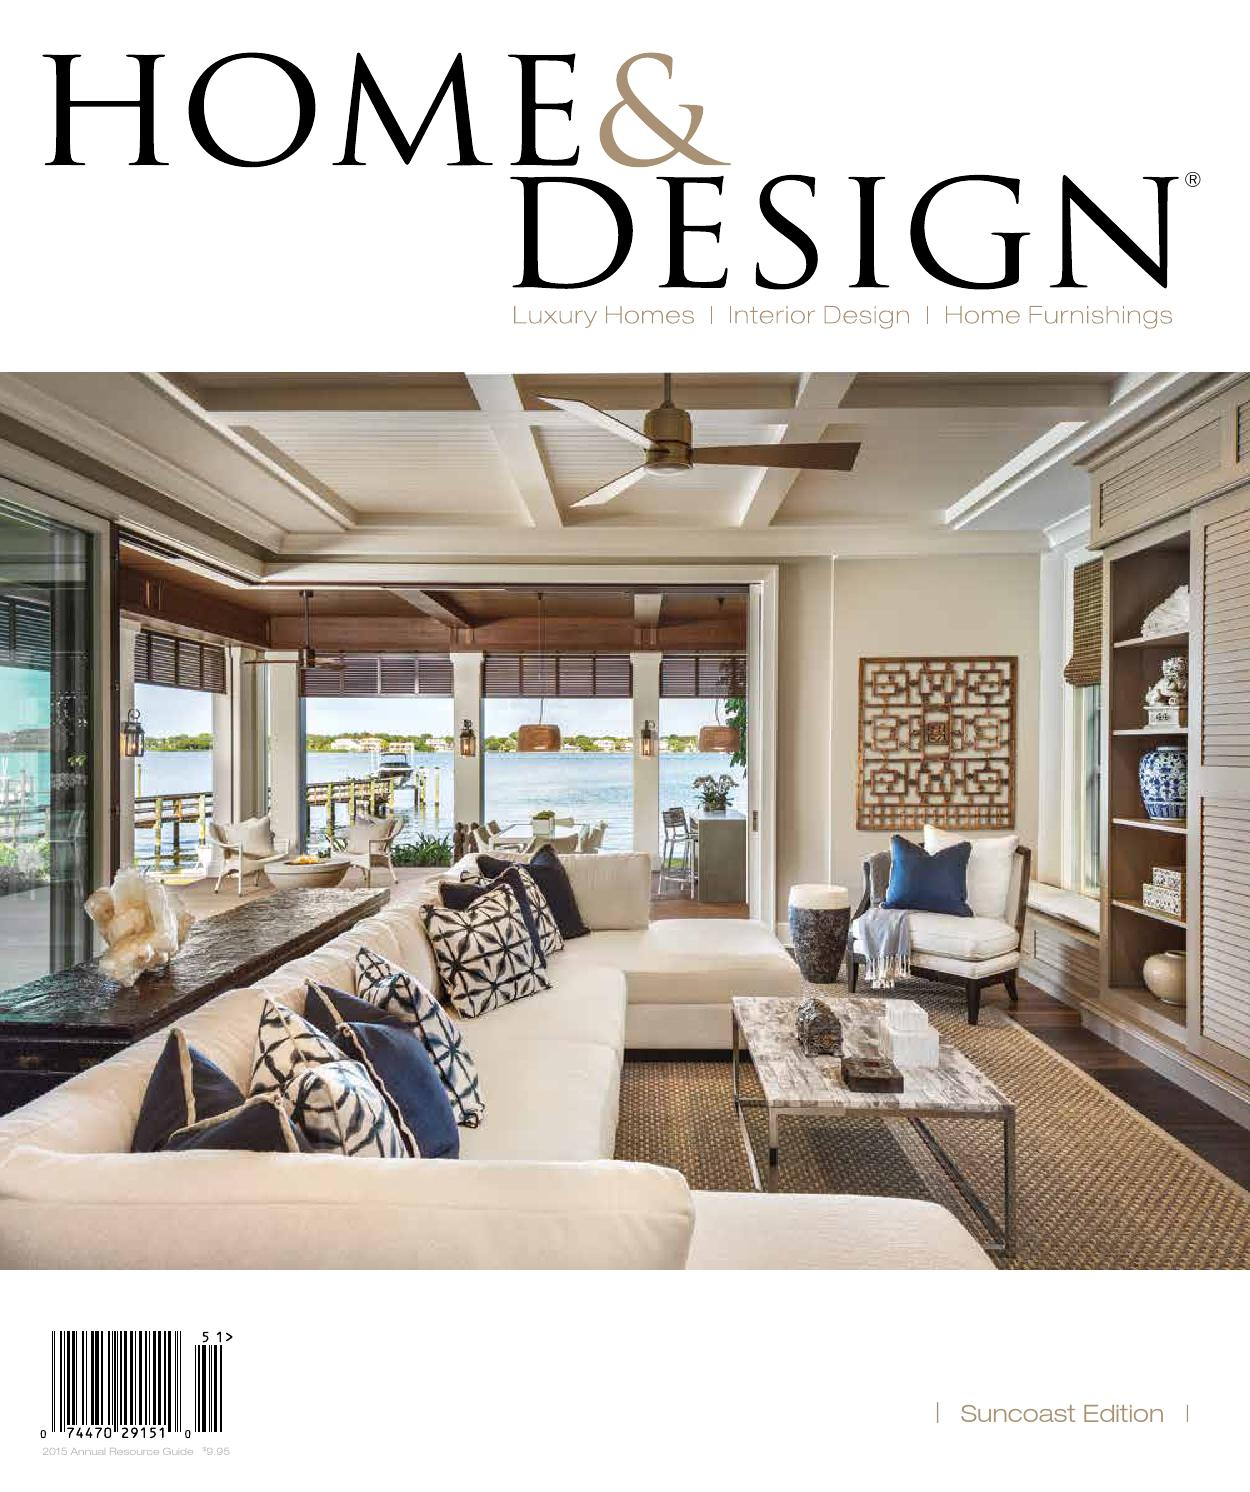 Home design magazine annual resource guide 2015 for Modern home design 2015